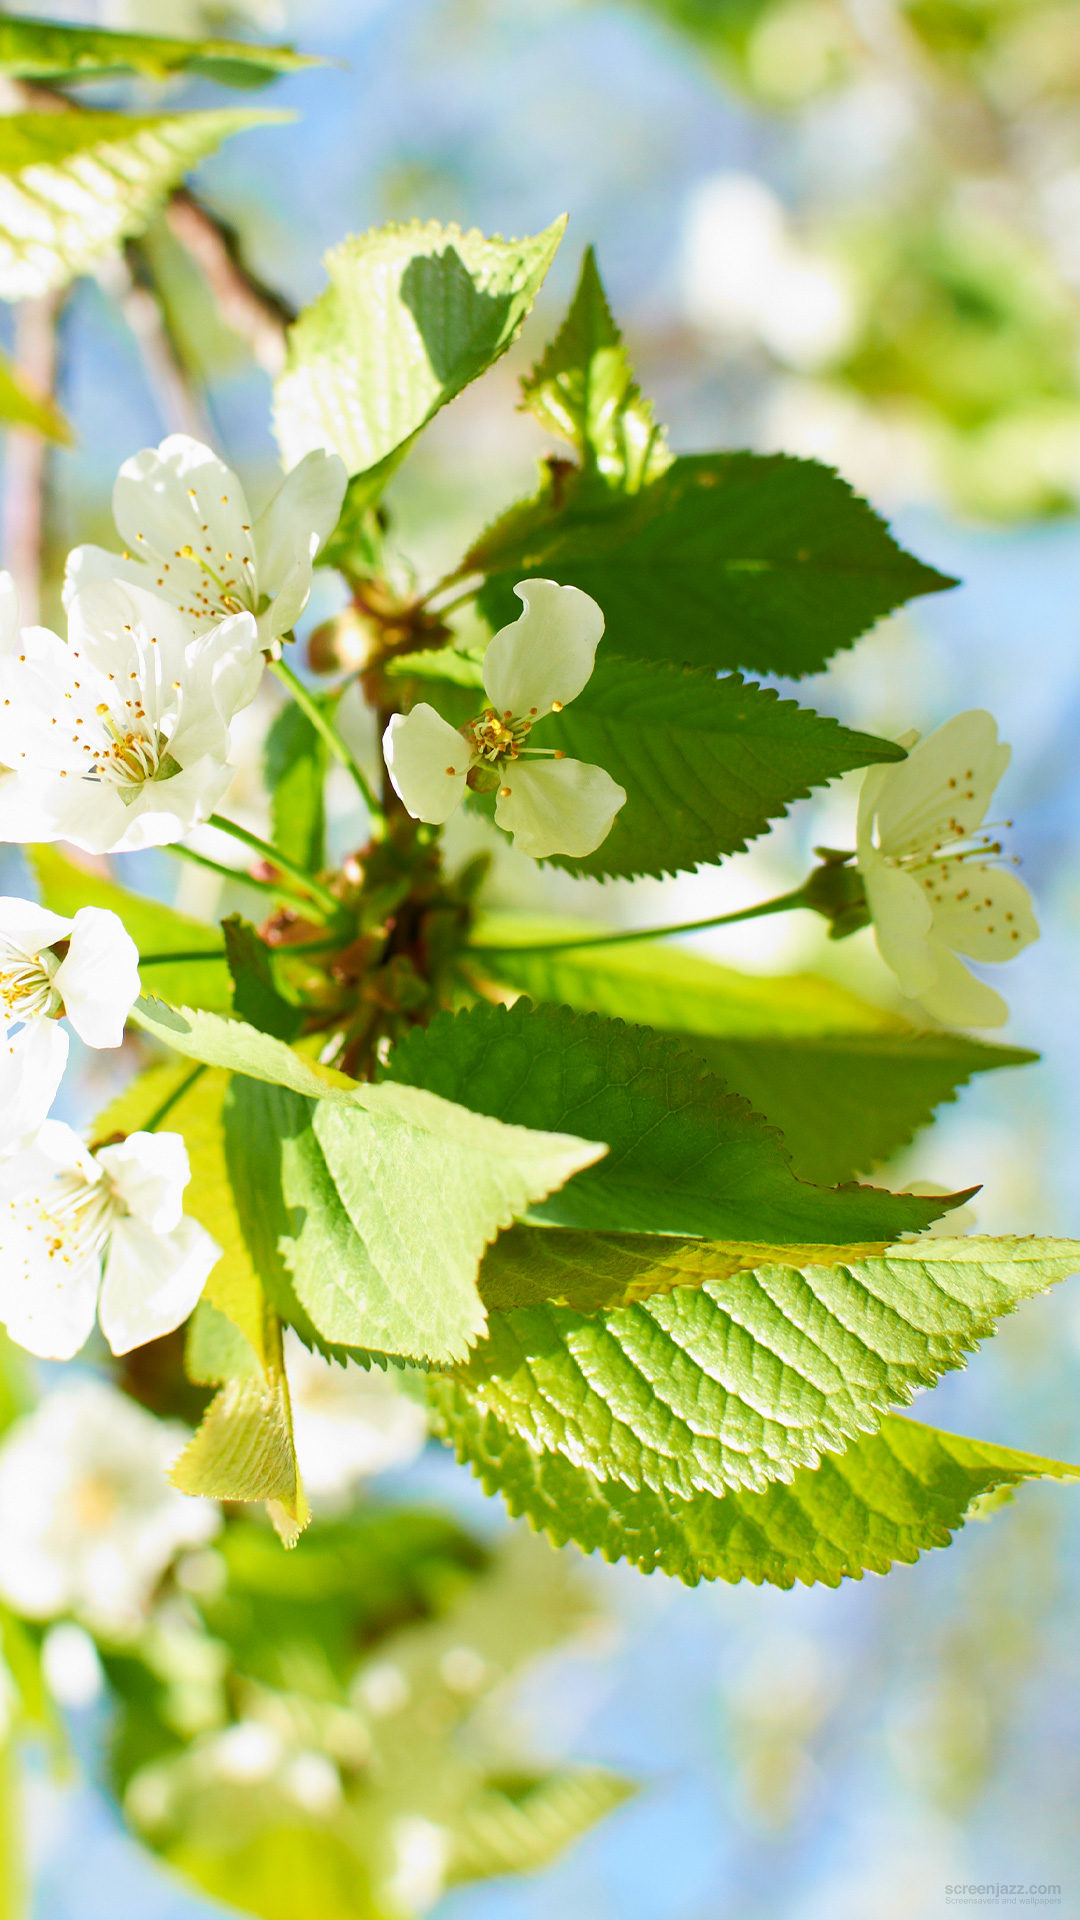 Apple Tree Flowers Wallpaper Apple Tree Flowers Galaxy S4 Download